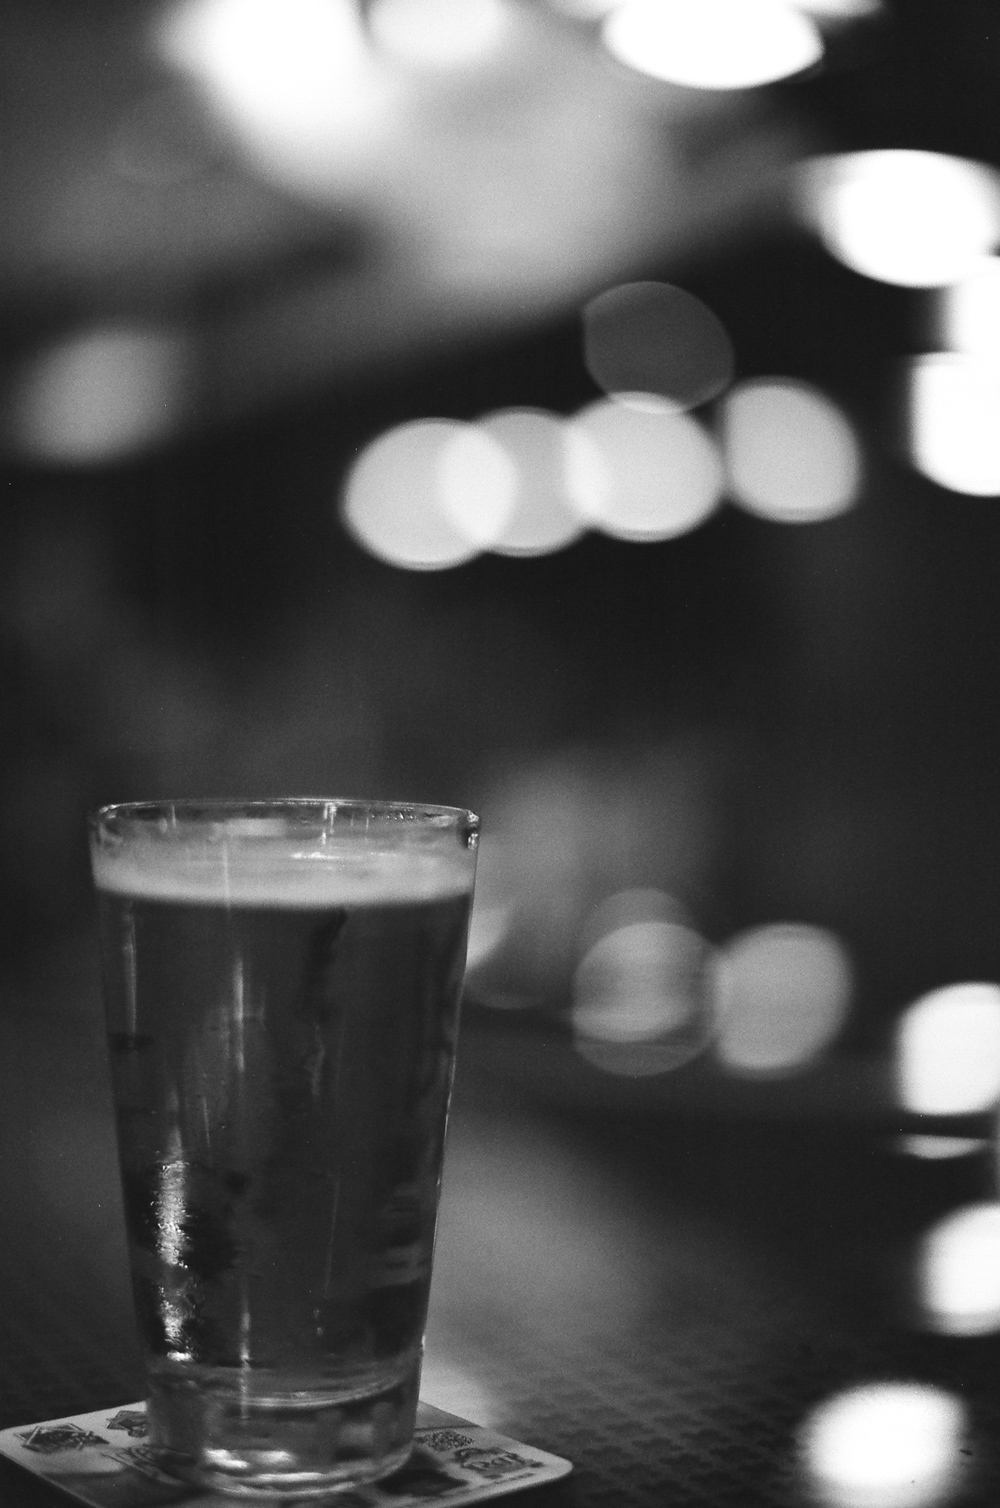 A Cold One by Rohan Gupte [Digital equivalent: ISO 100, f/1.2, 1/30]